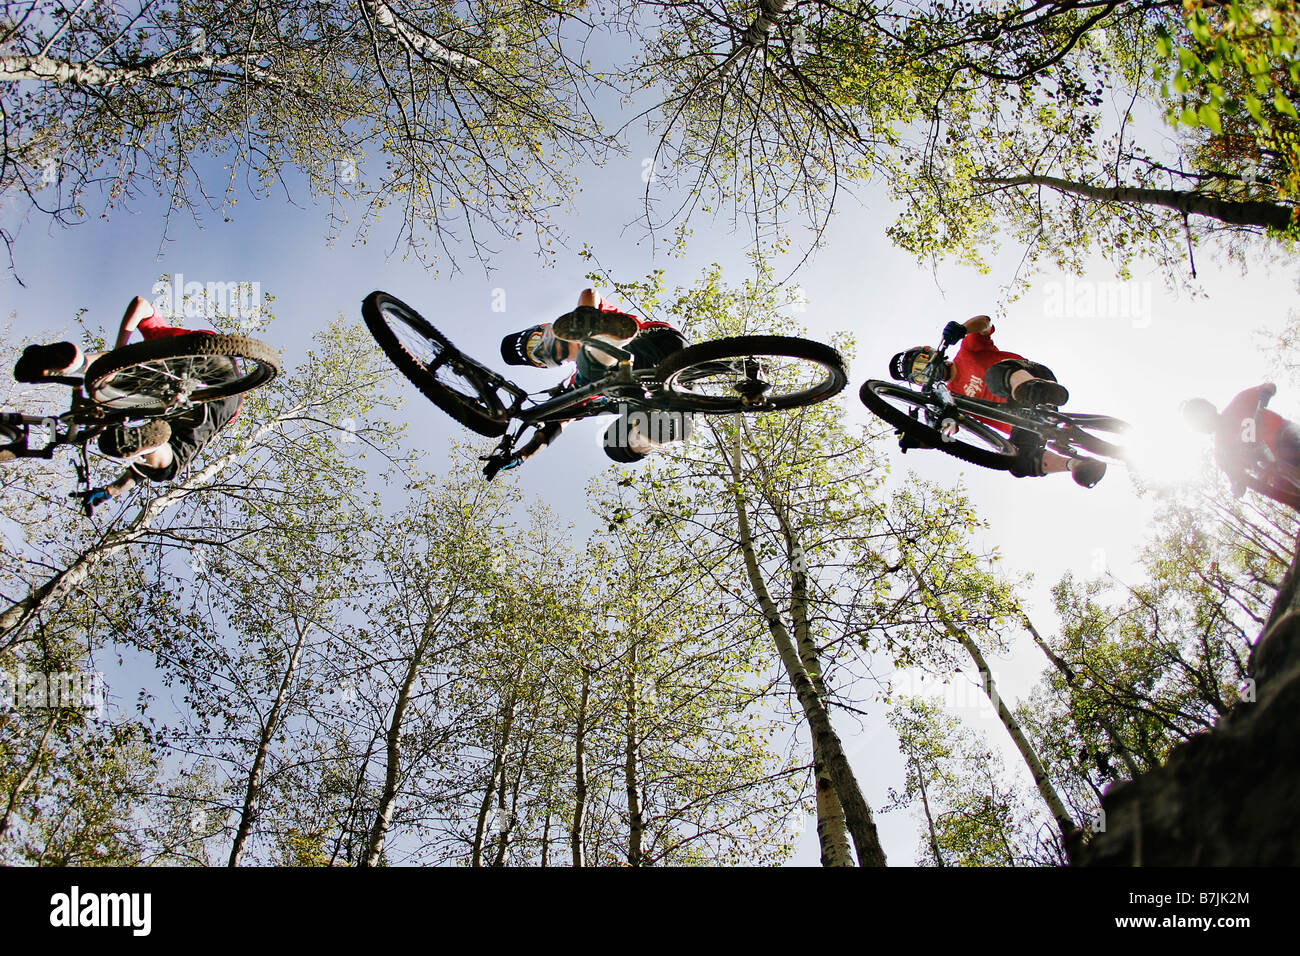 Under a series of bikers mid-jump; Canada Olympic Park, Calgary, AB - Stock Image